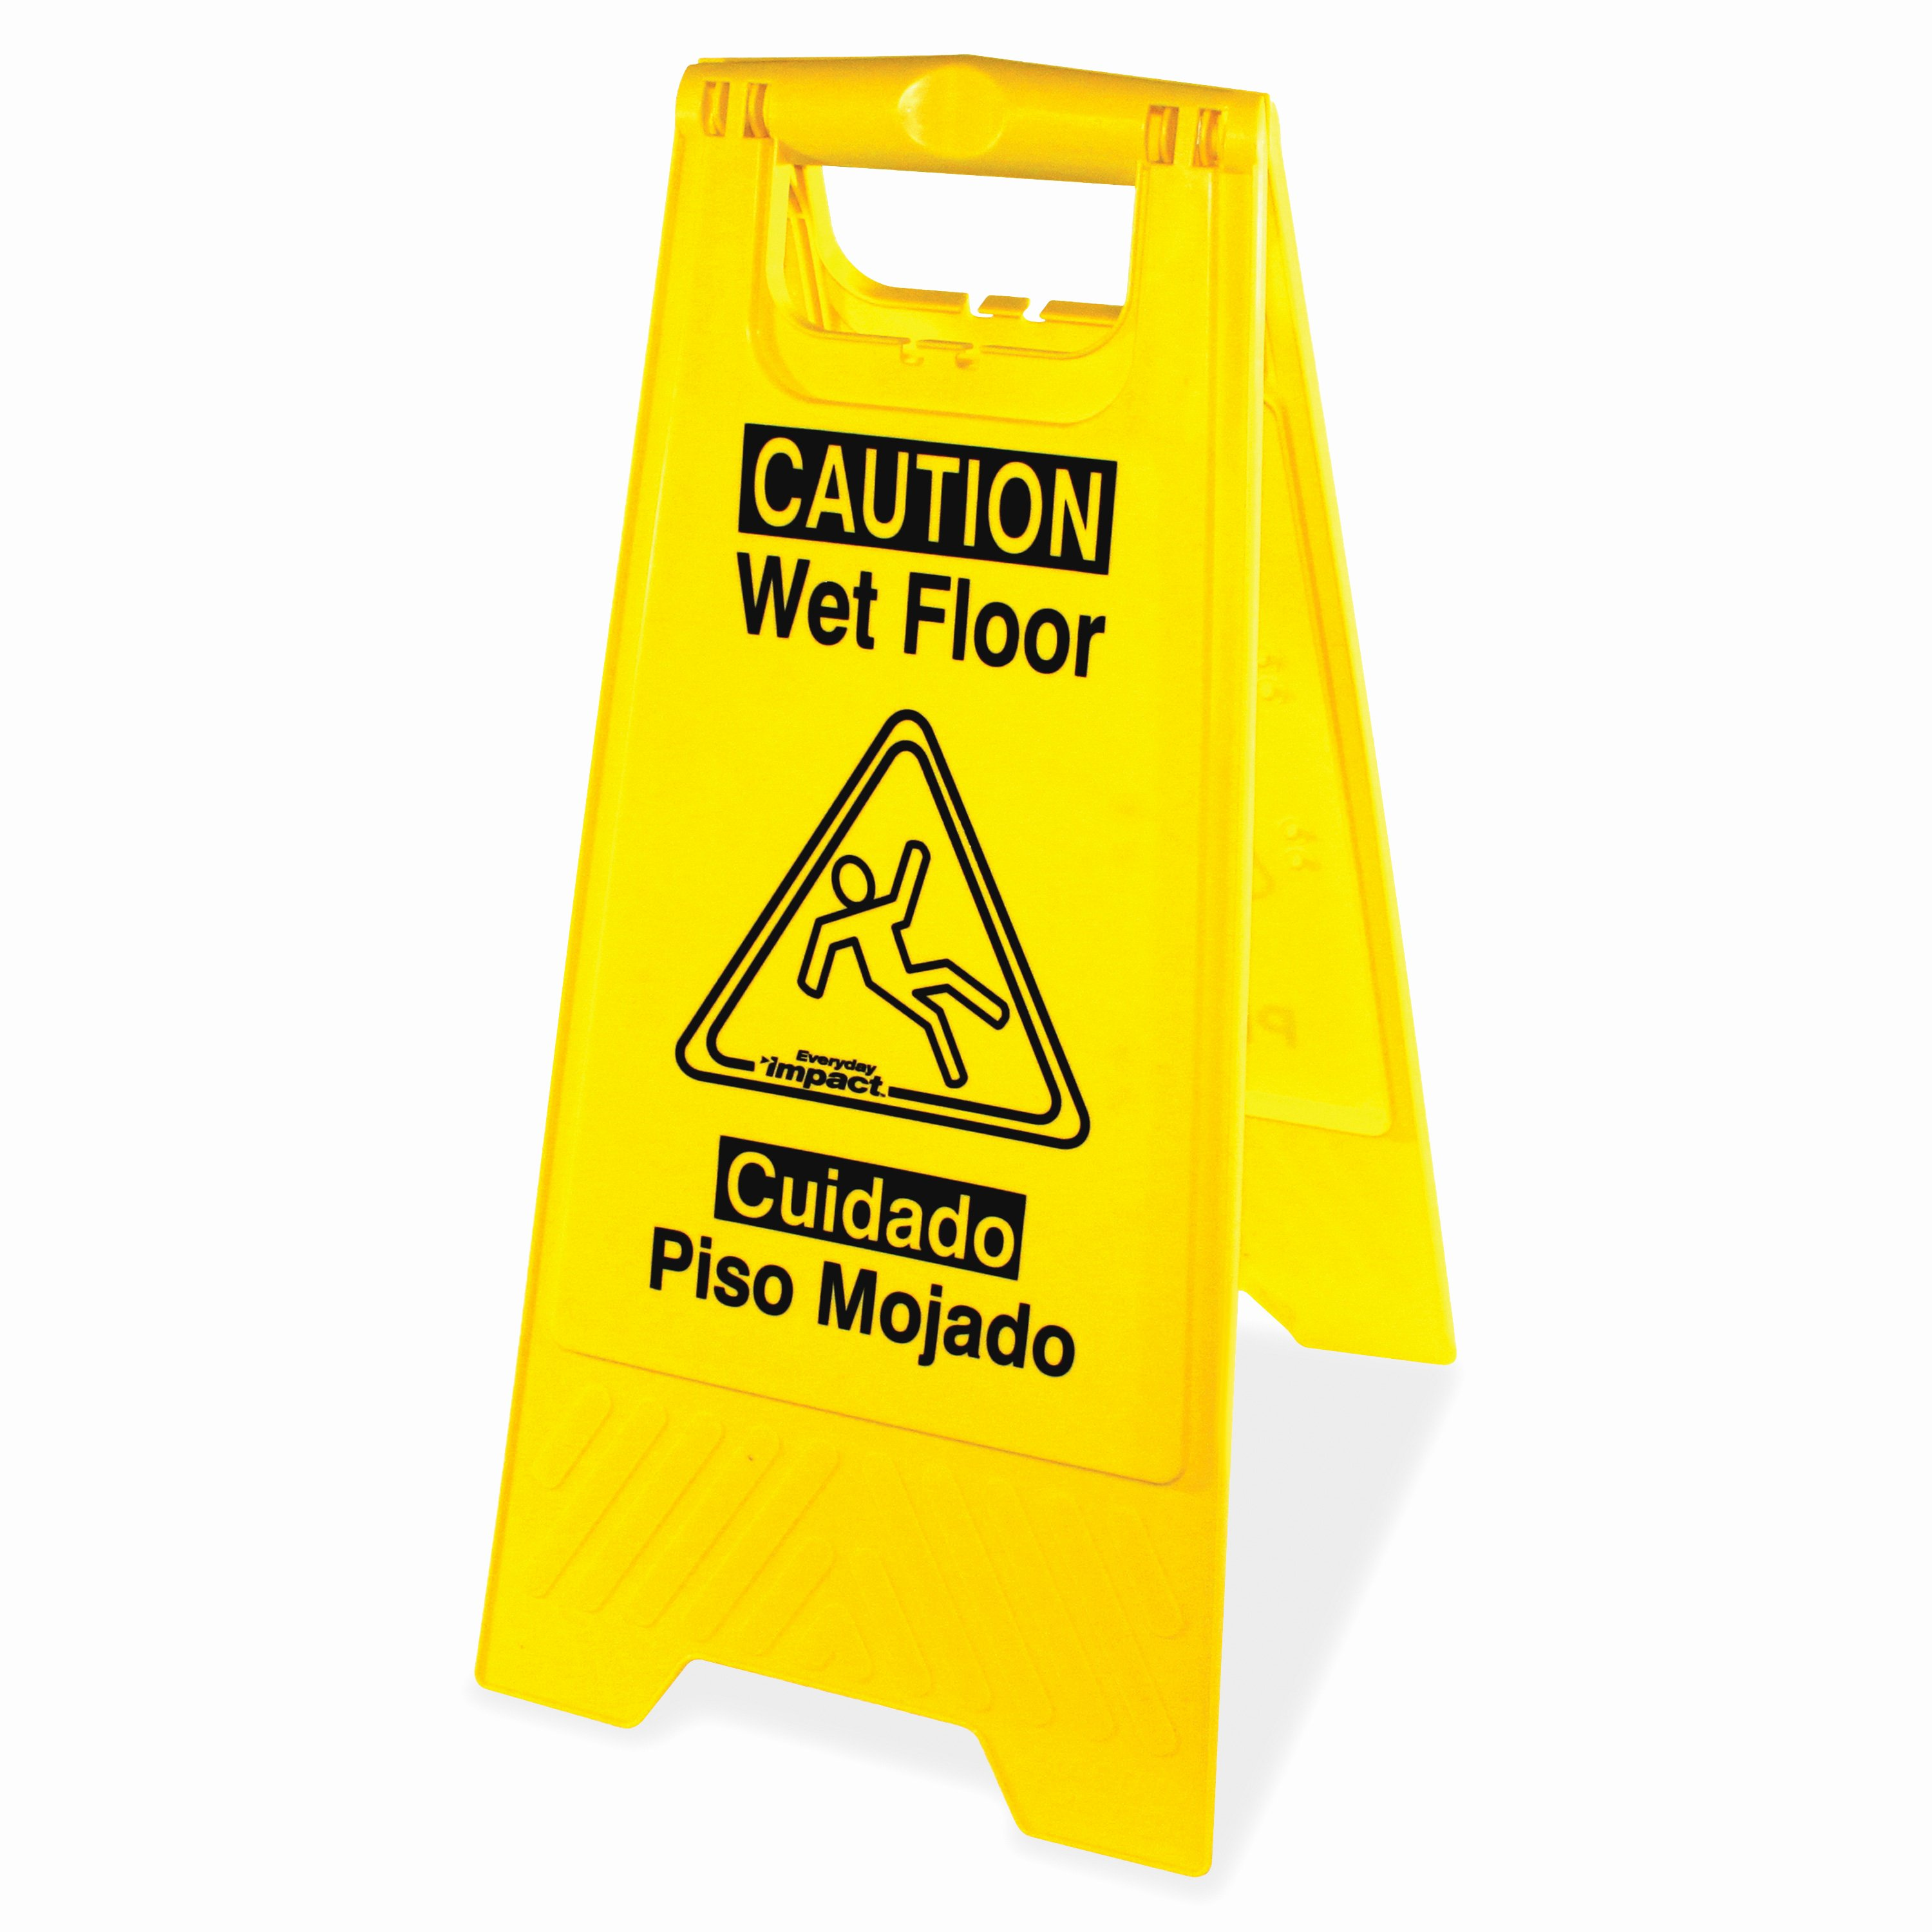 Wet Floor Signs Printable New Impact Products 9152wct English Spanish Wet Floor Sign 6